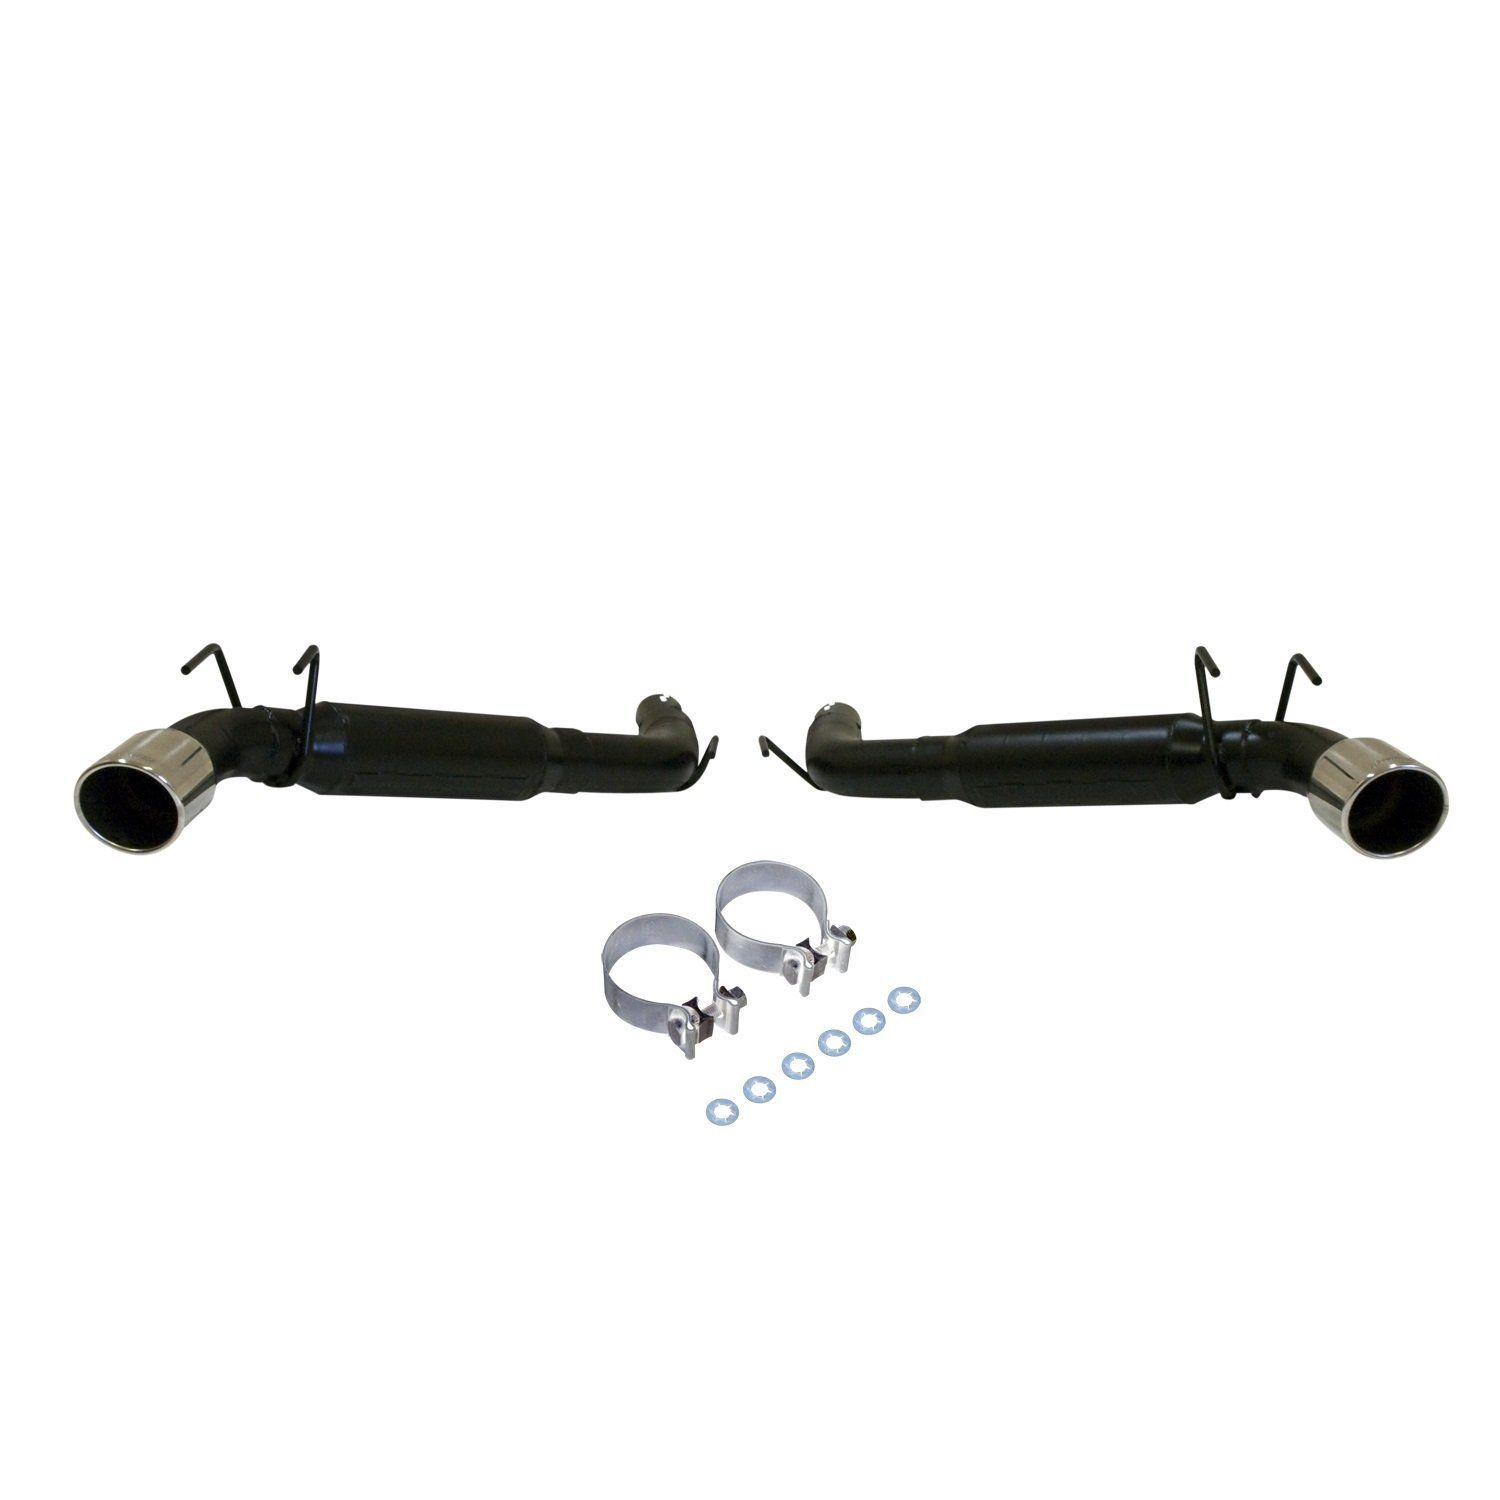 FLOWMASTER Outlaw Axle-back Polished Dual Exhaust for 10-13 Chevy CAMARO SS